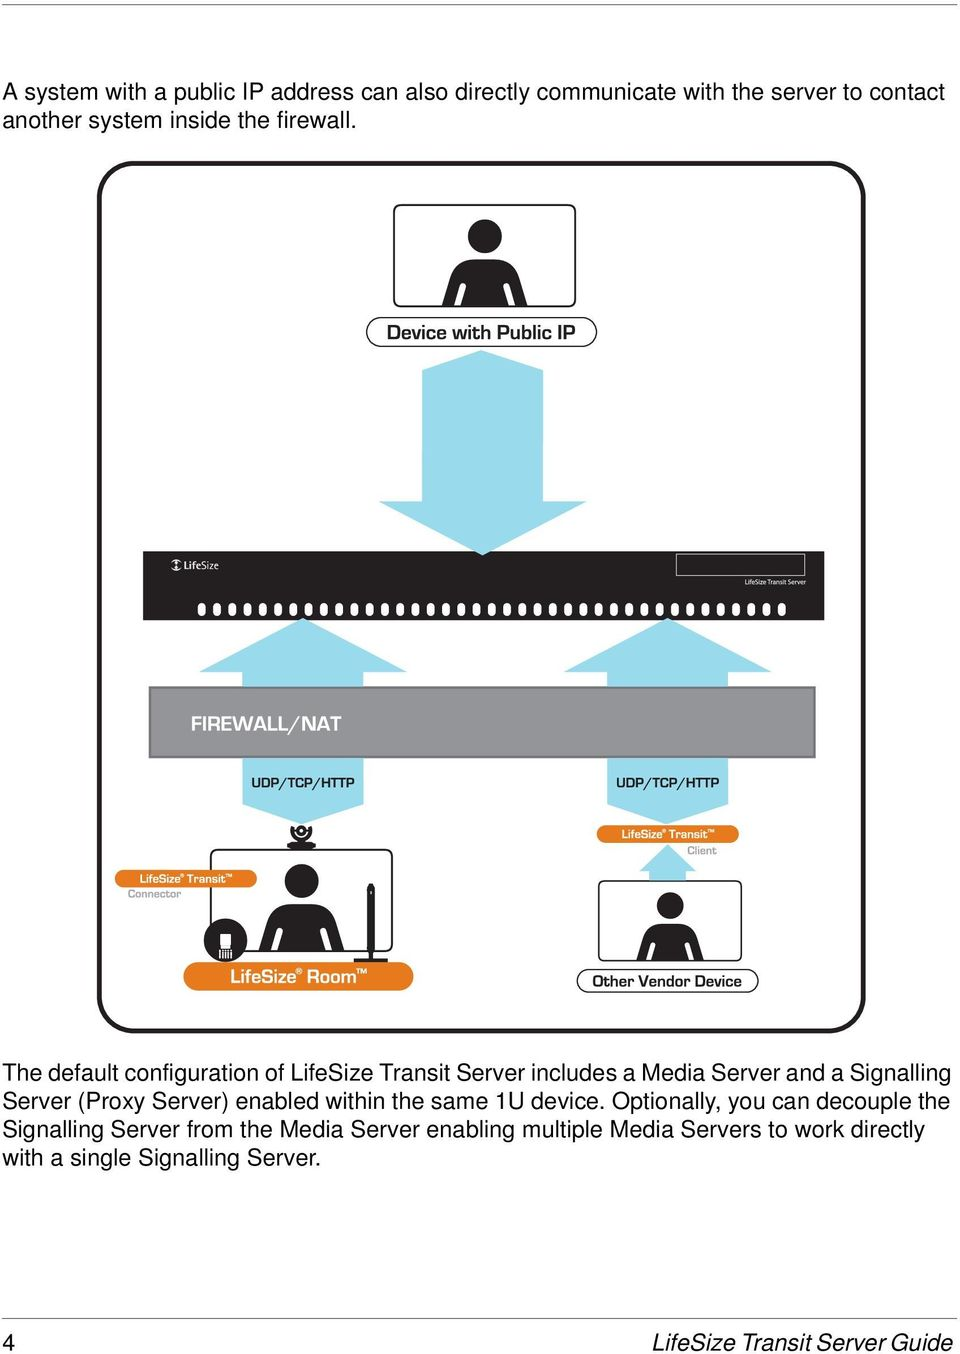 The default configuration of LifeSize Transit Server includes a Media Server and a Signalling Server (Proxy Server)